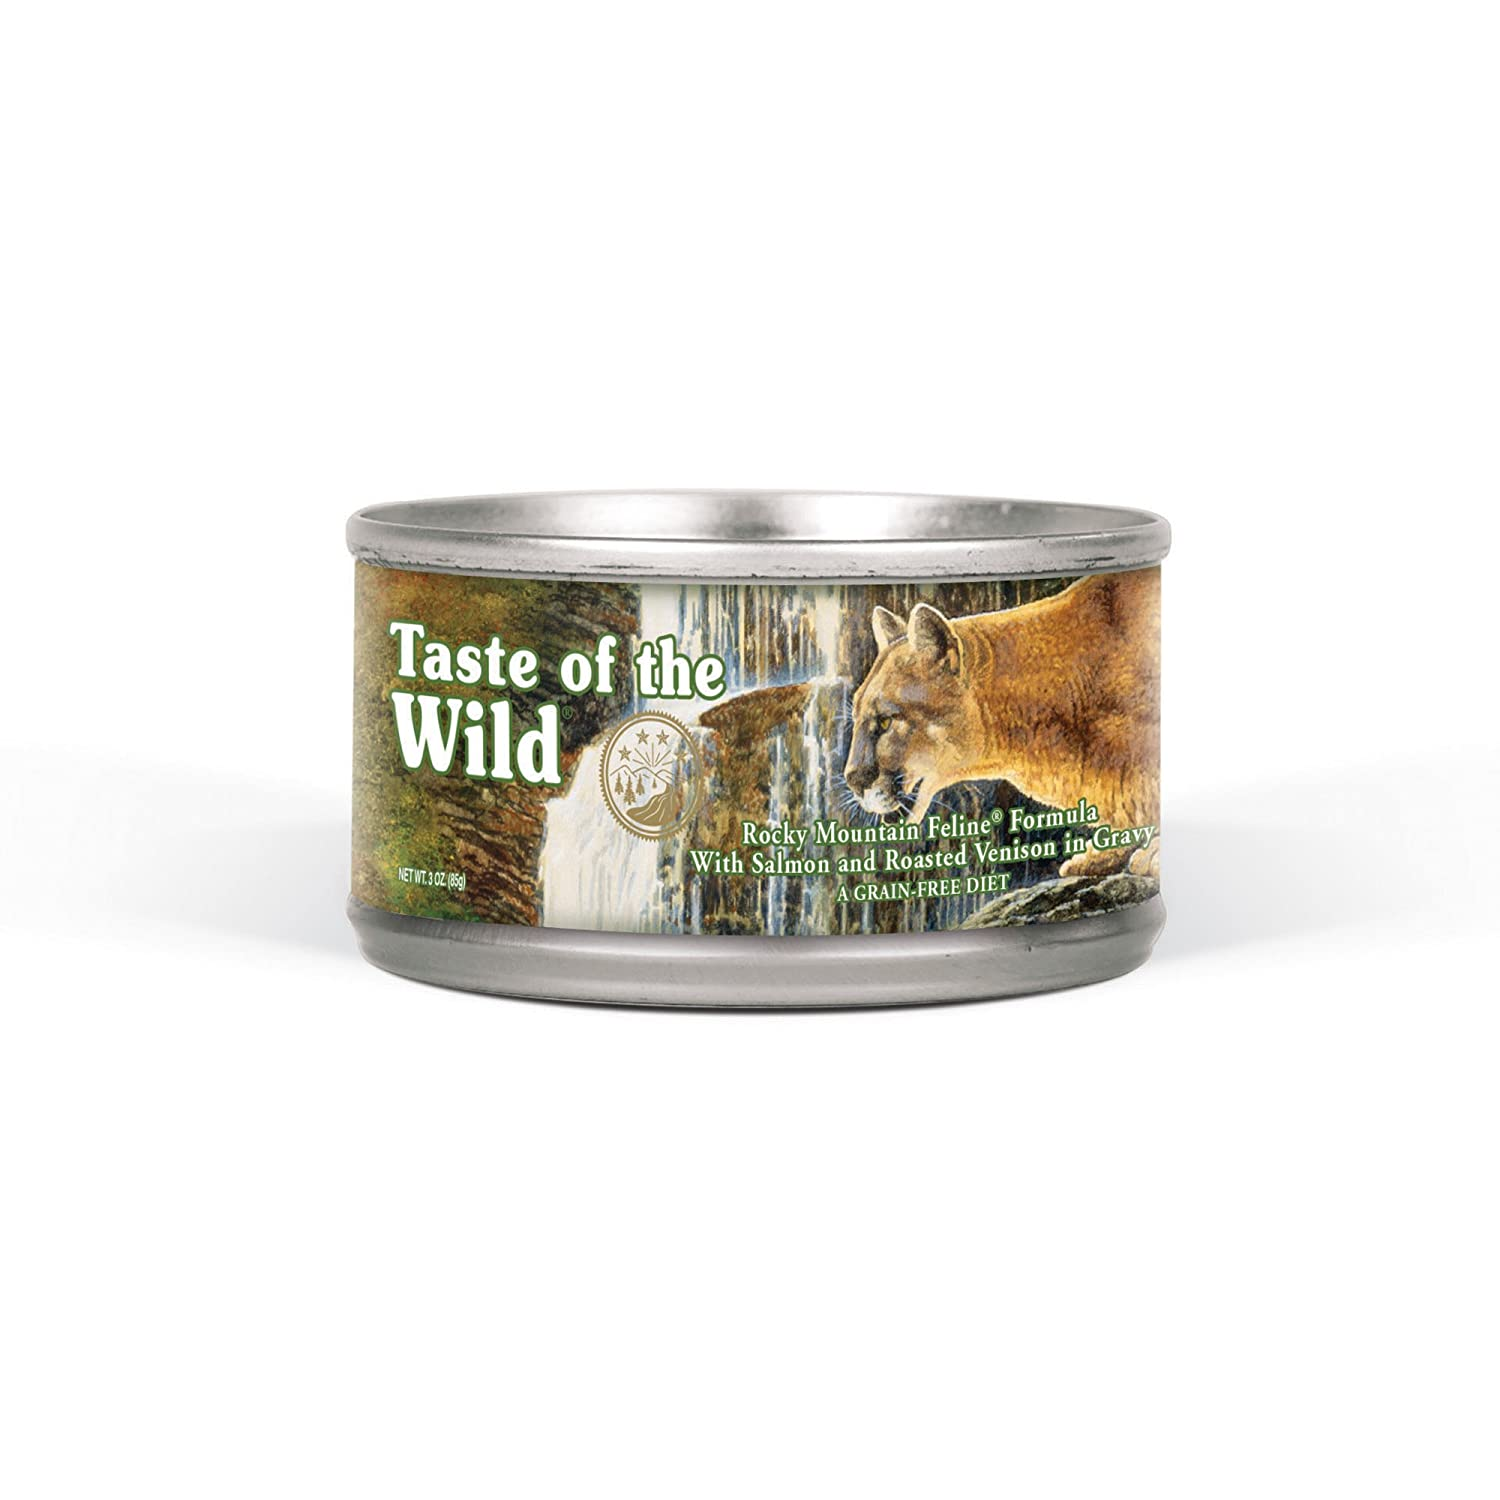 Taste of the Wild Grain Free Real Meat Recipe Premium Wet Canned Cat Food